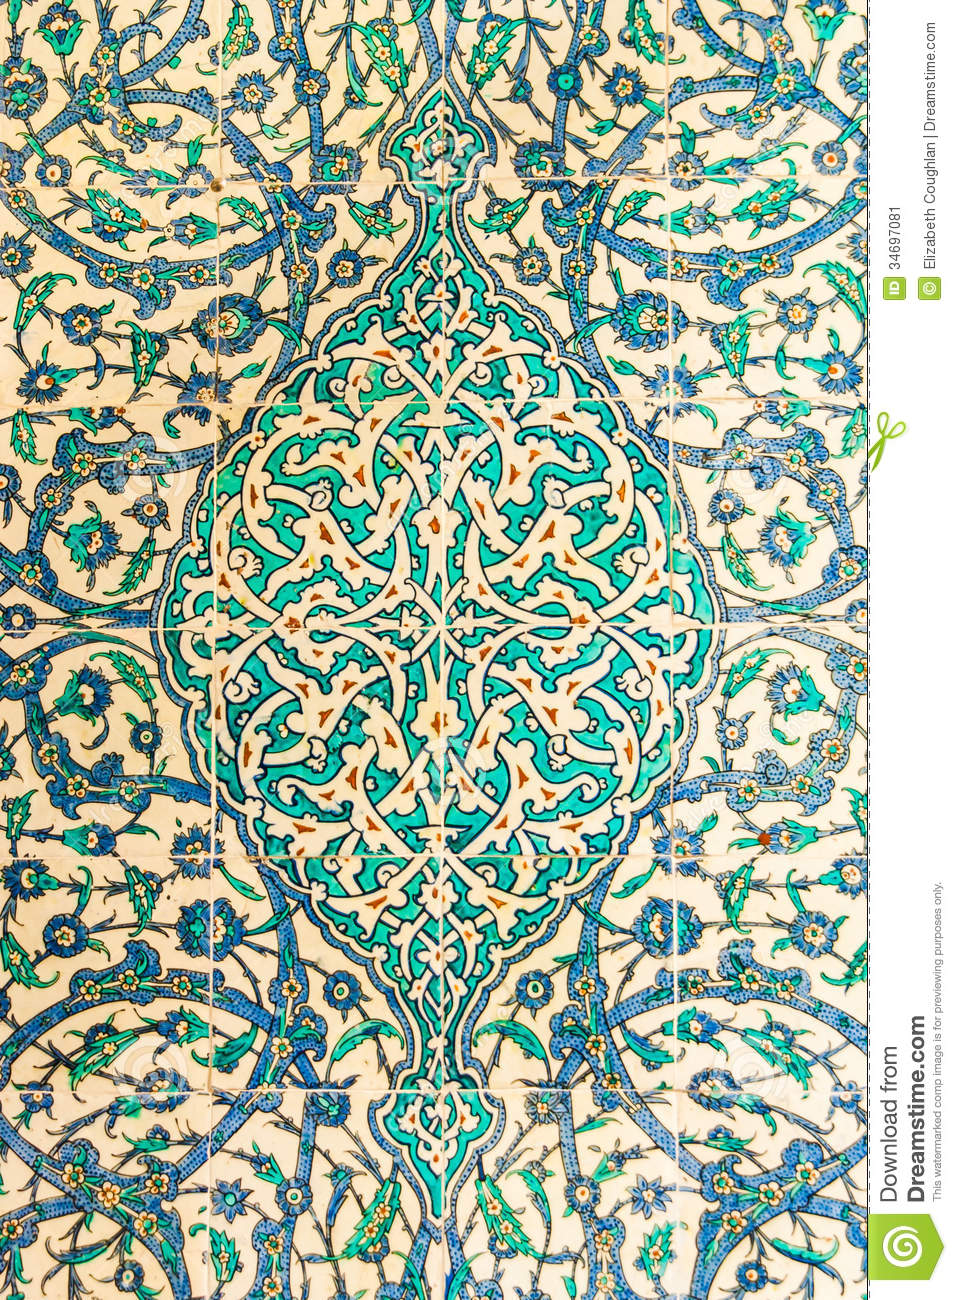 Turkish Ceramic Tiles stock image Image of pattern